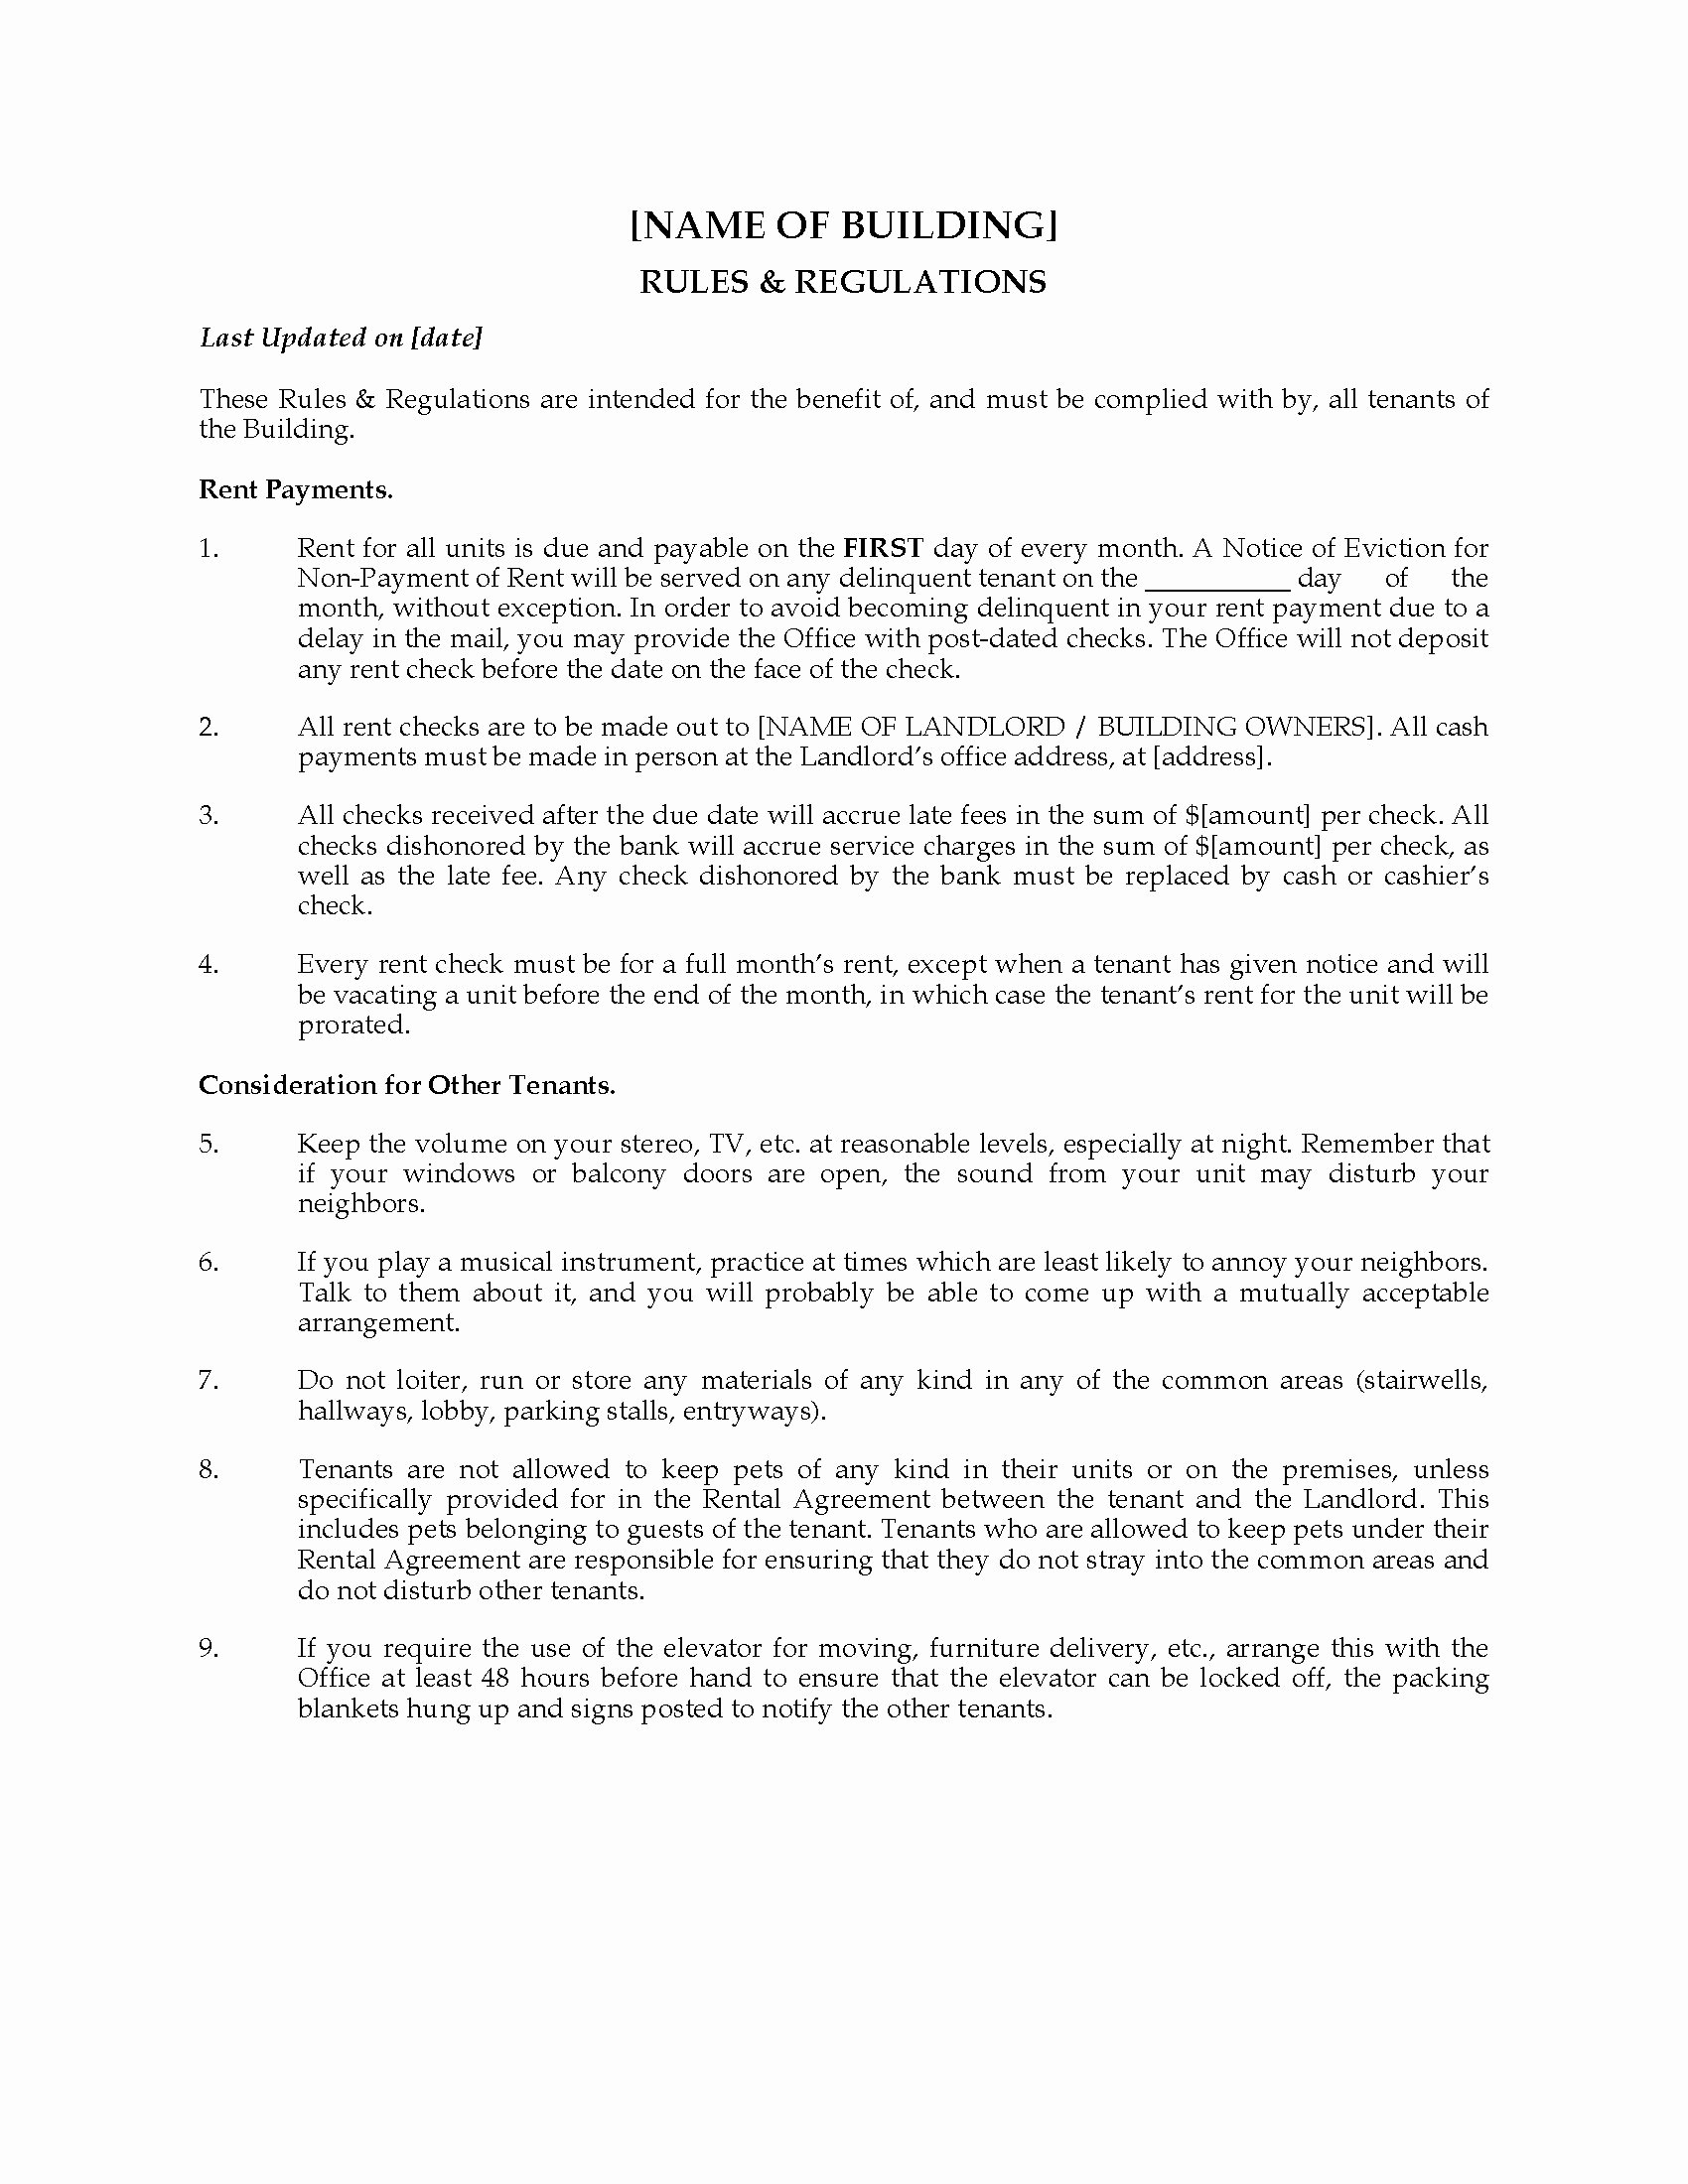 Vacation Rental House Rules Template Fresh Apartment Building Rules and Regulations